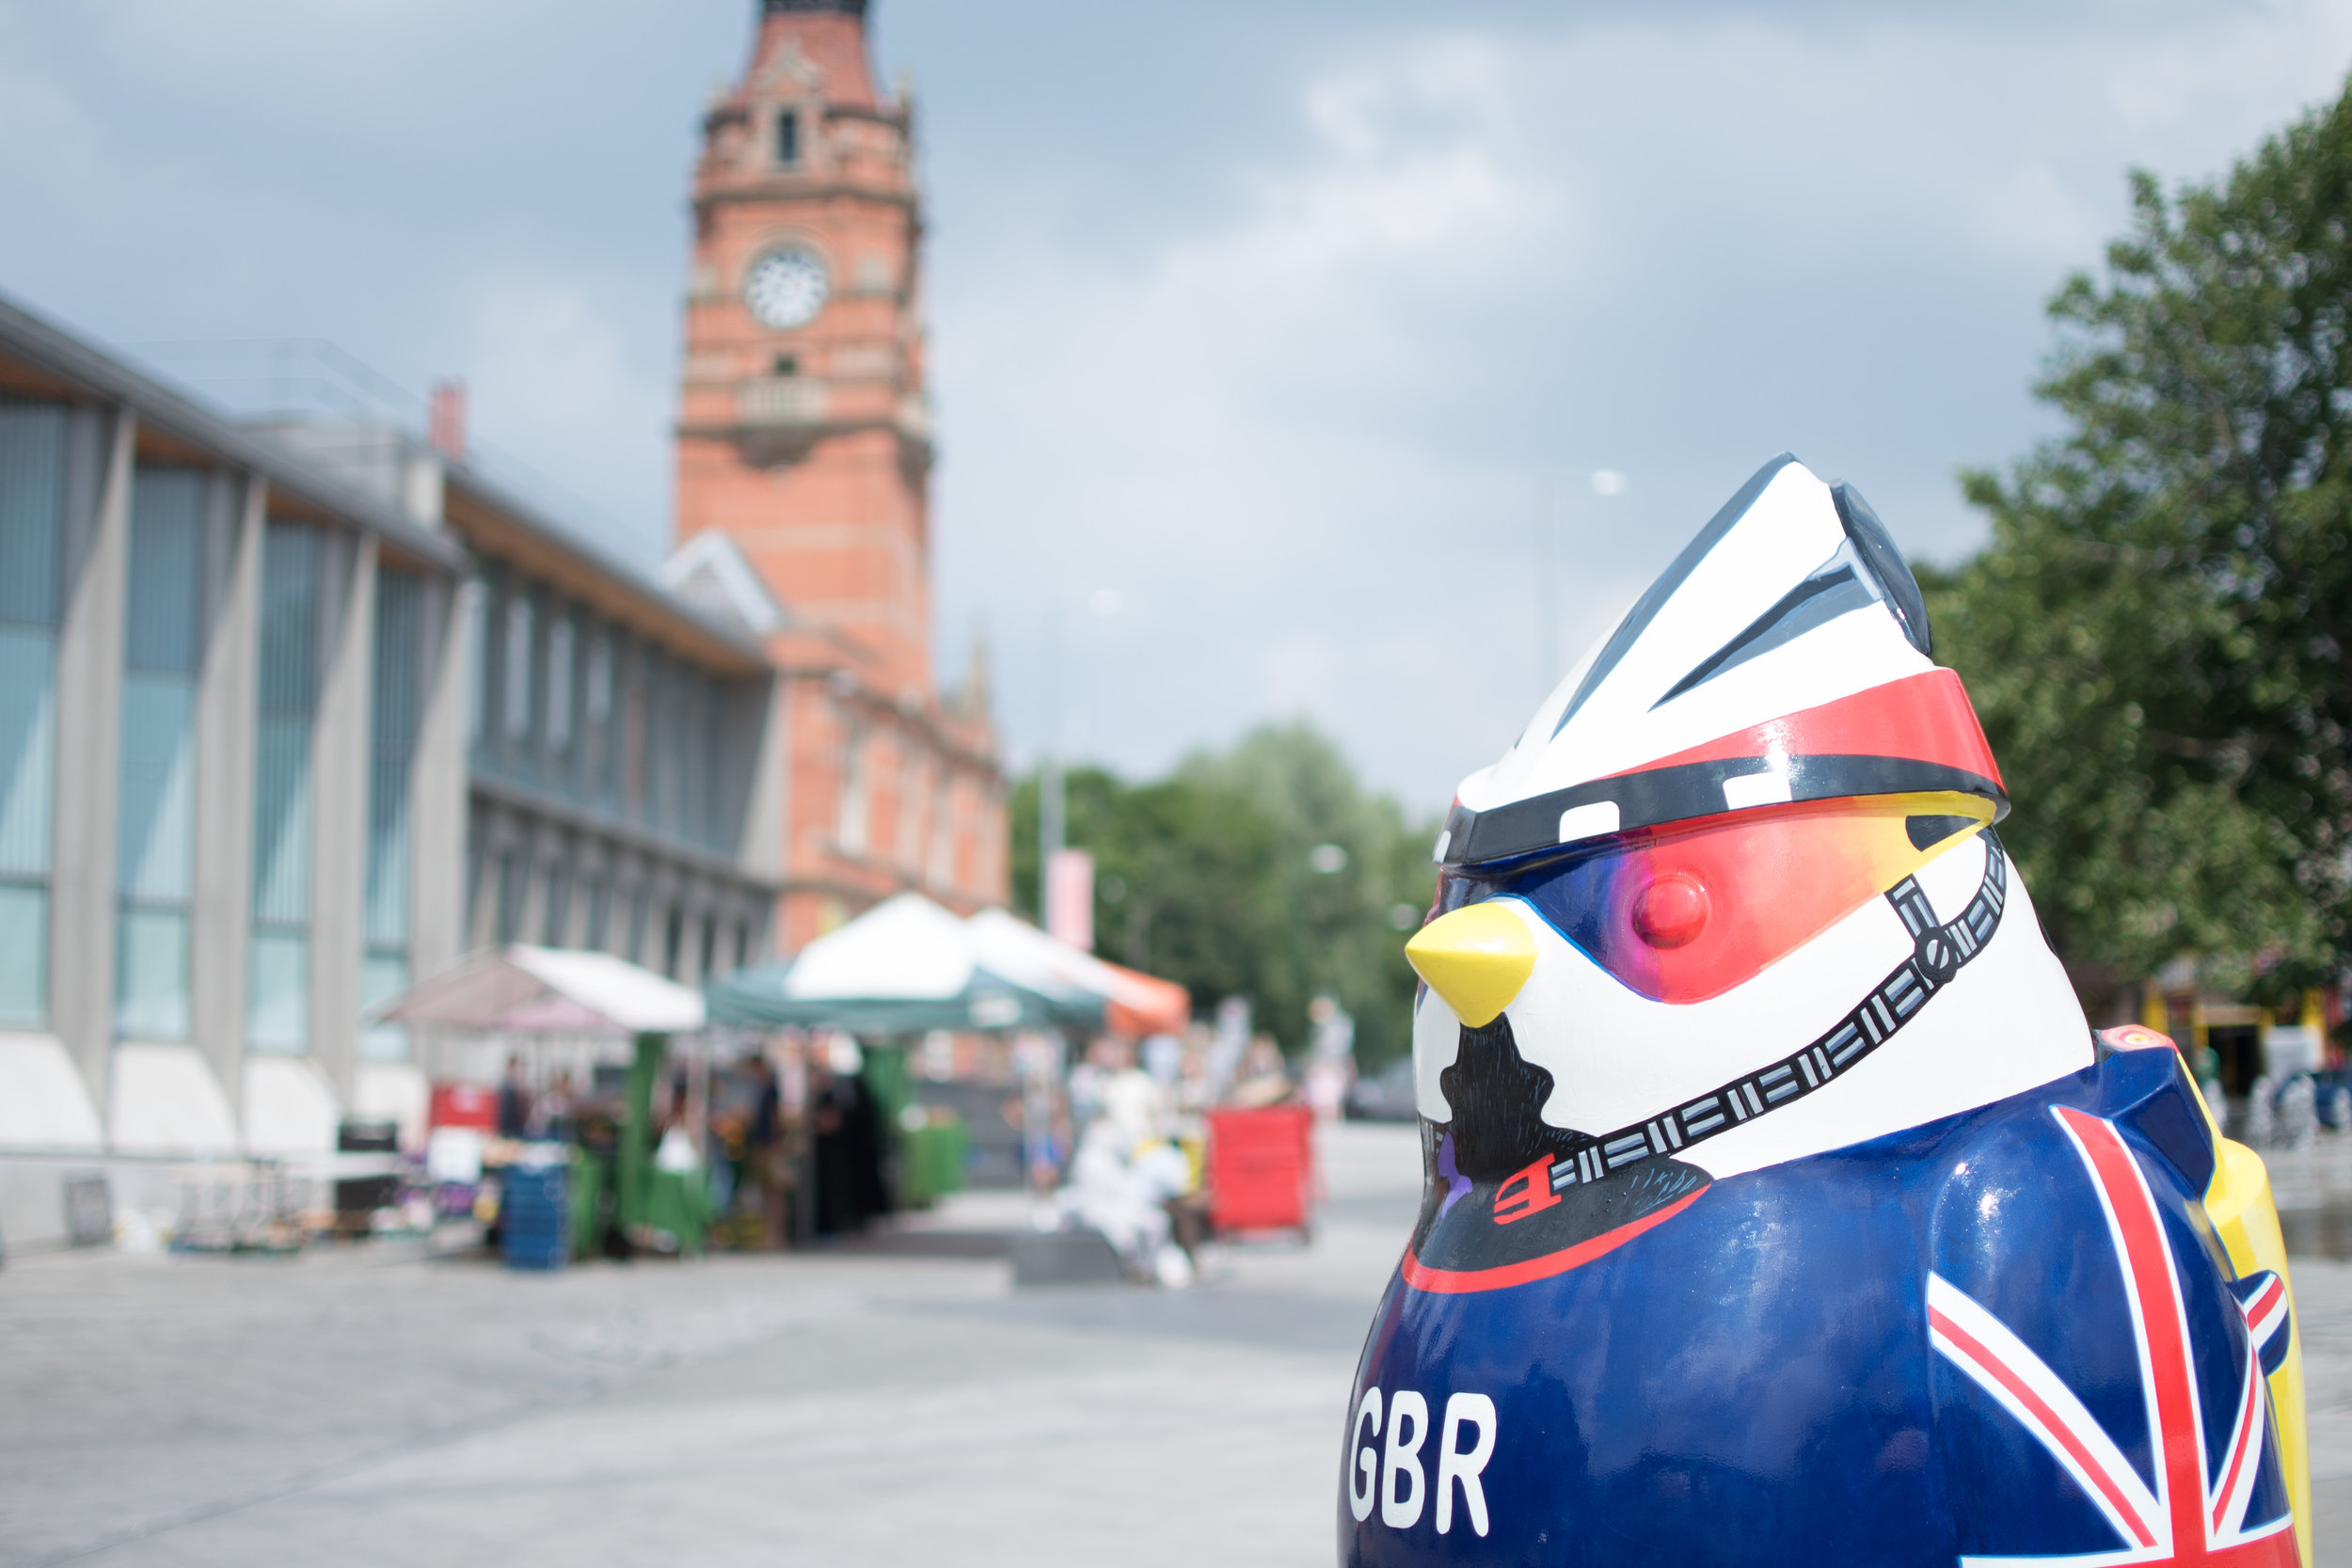 One of the many Hoodwinked statues to be found across Nottingham throughout September